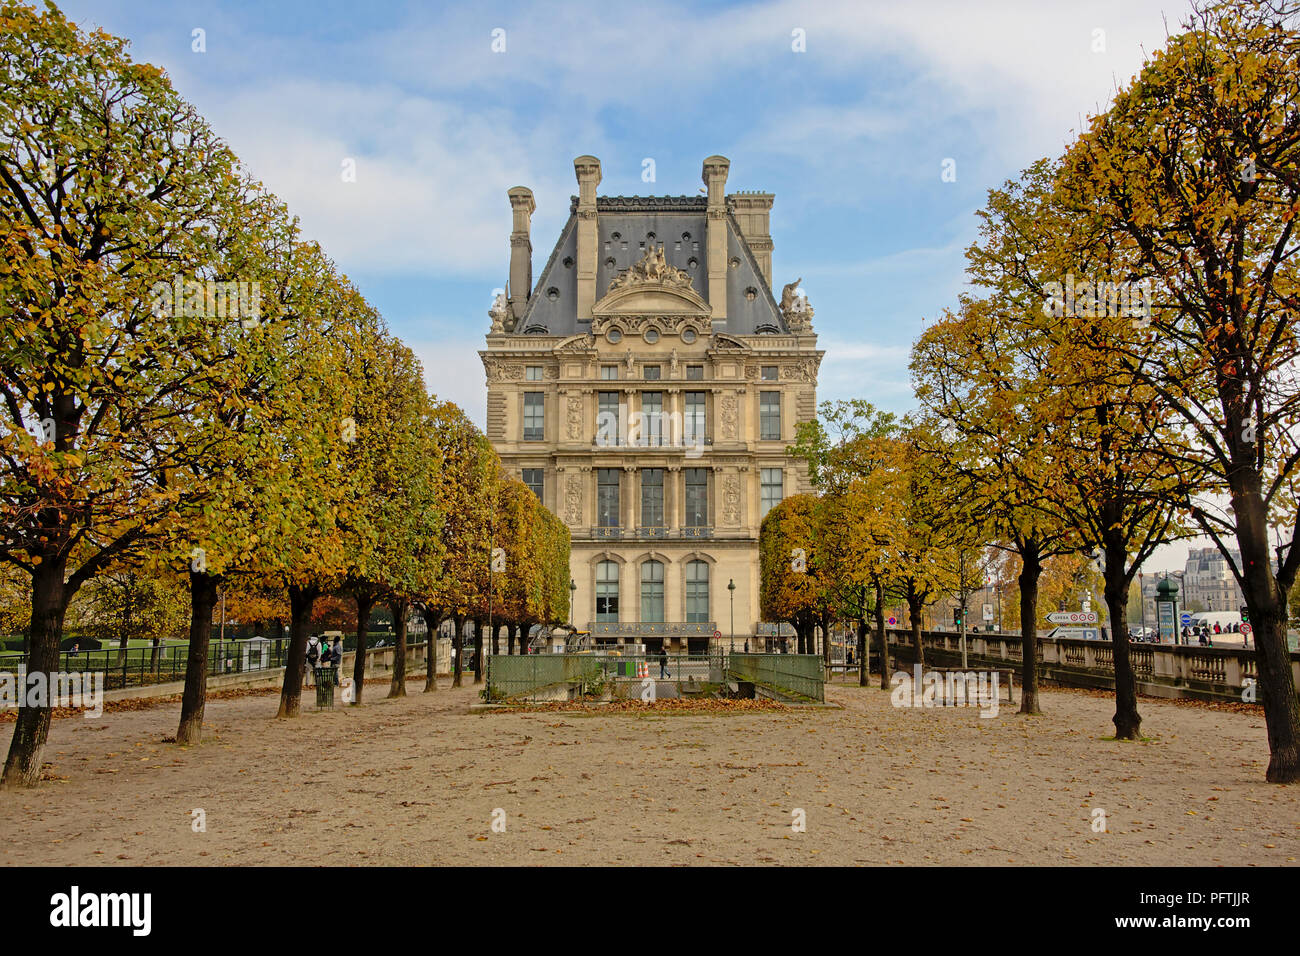 View from Tuileries park on the building of Ecole de Louvre, Paris, France - Stock Image